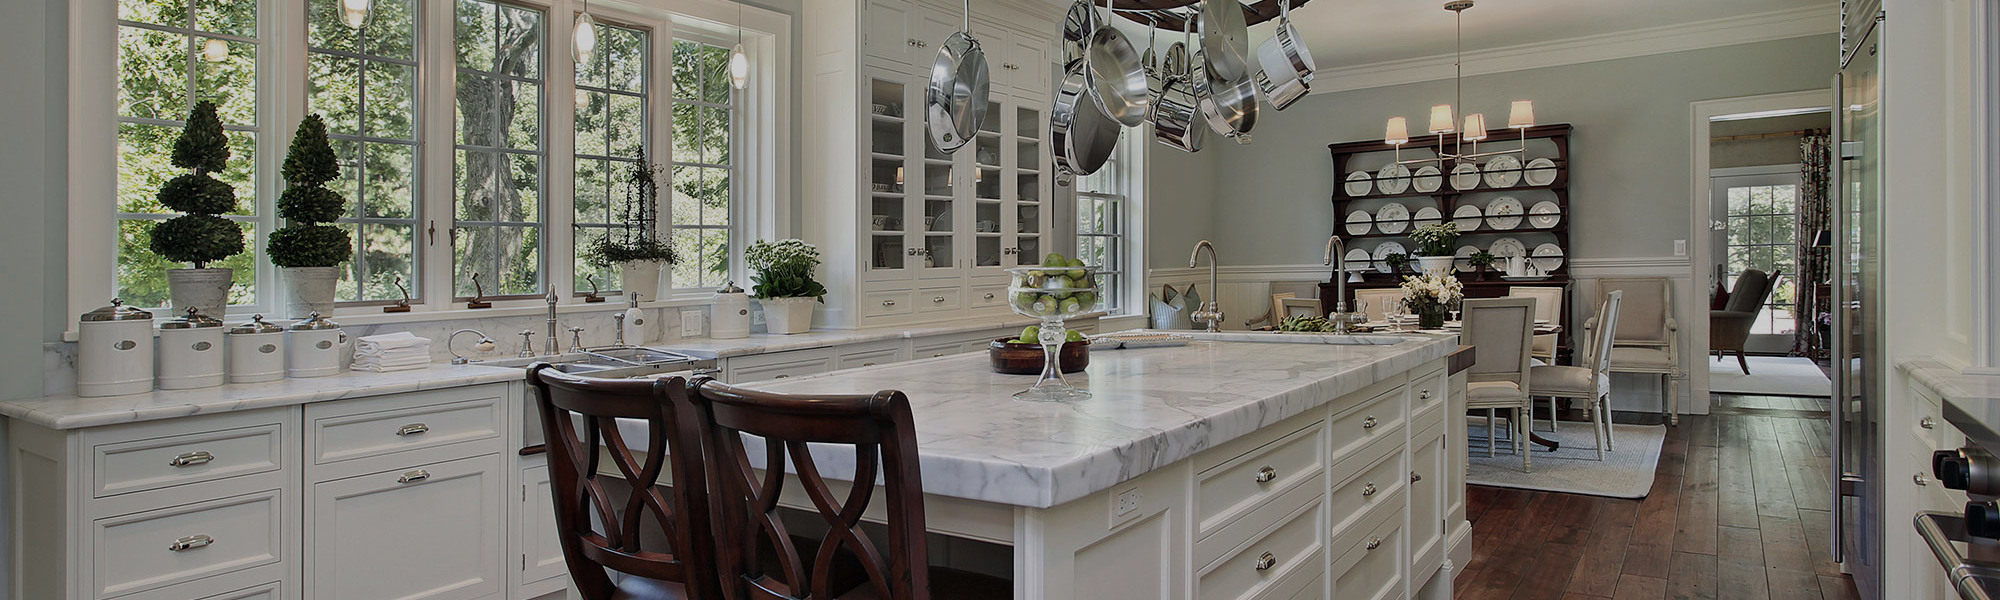 Custom cabinetry and kitchen design, granite countertops in ...